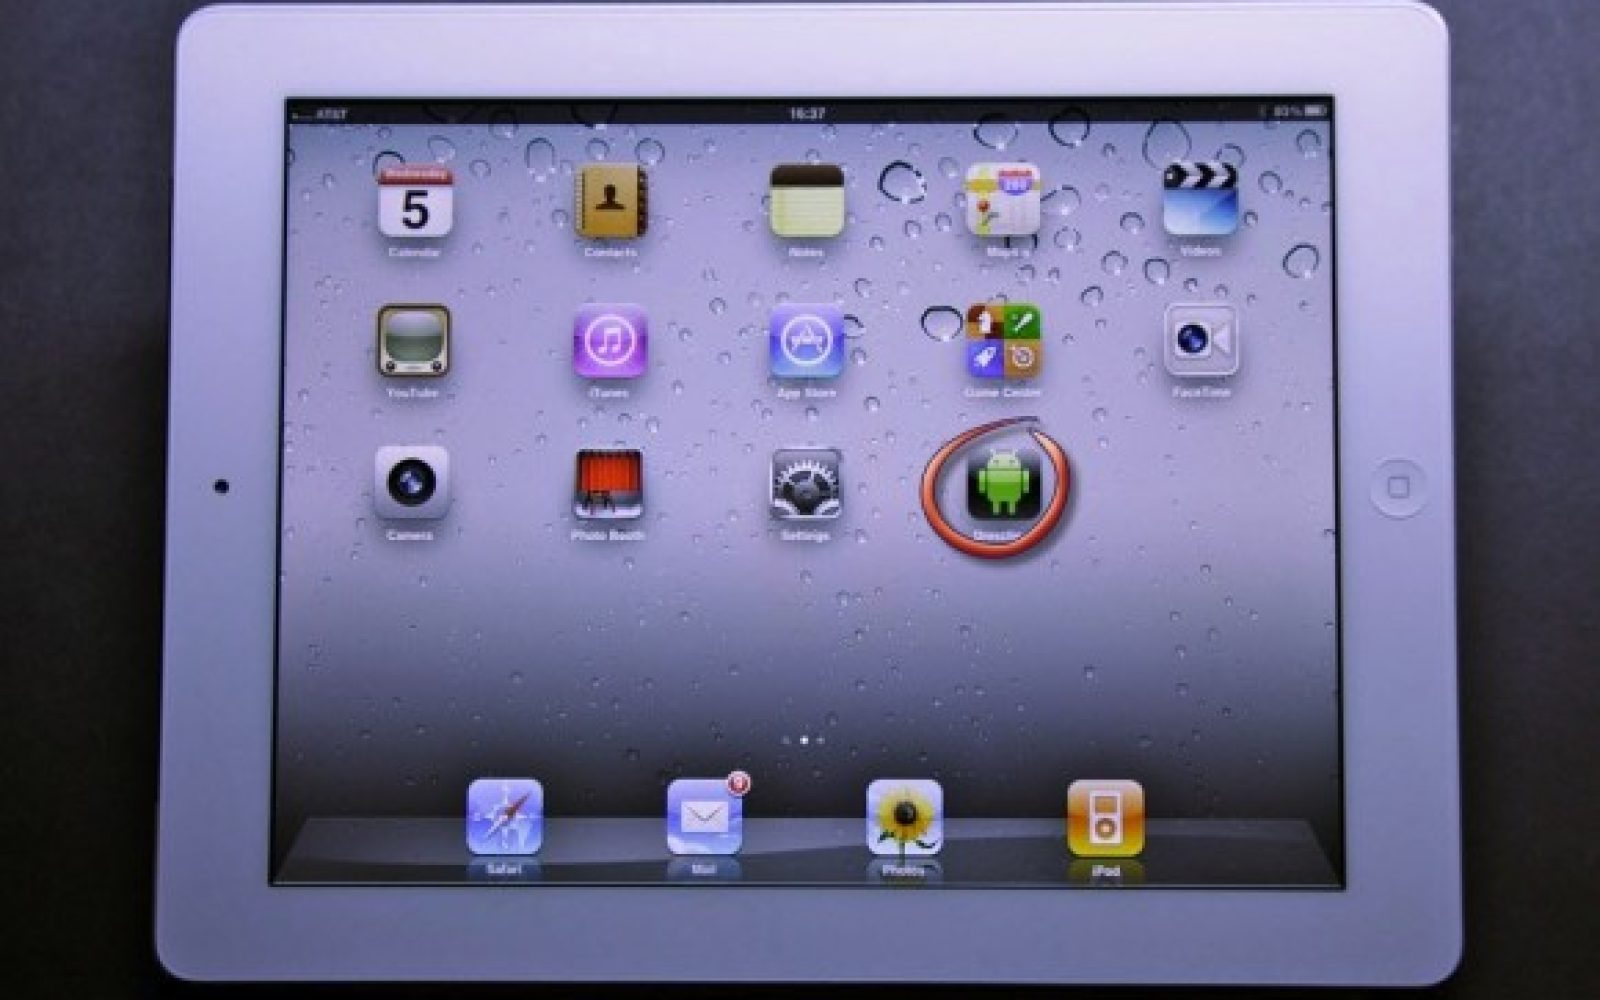 Android apps on your iPad? There's an app for that! - 9to5Mac